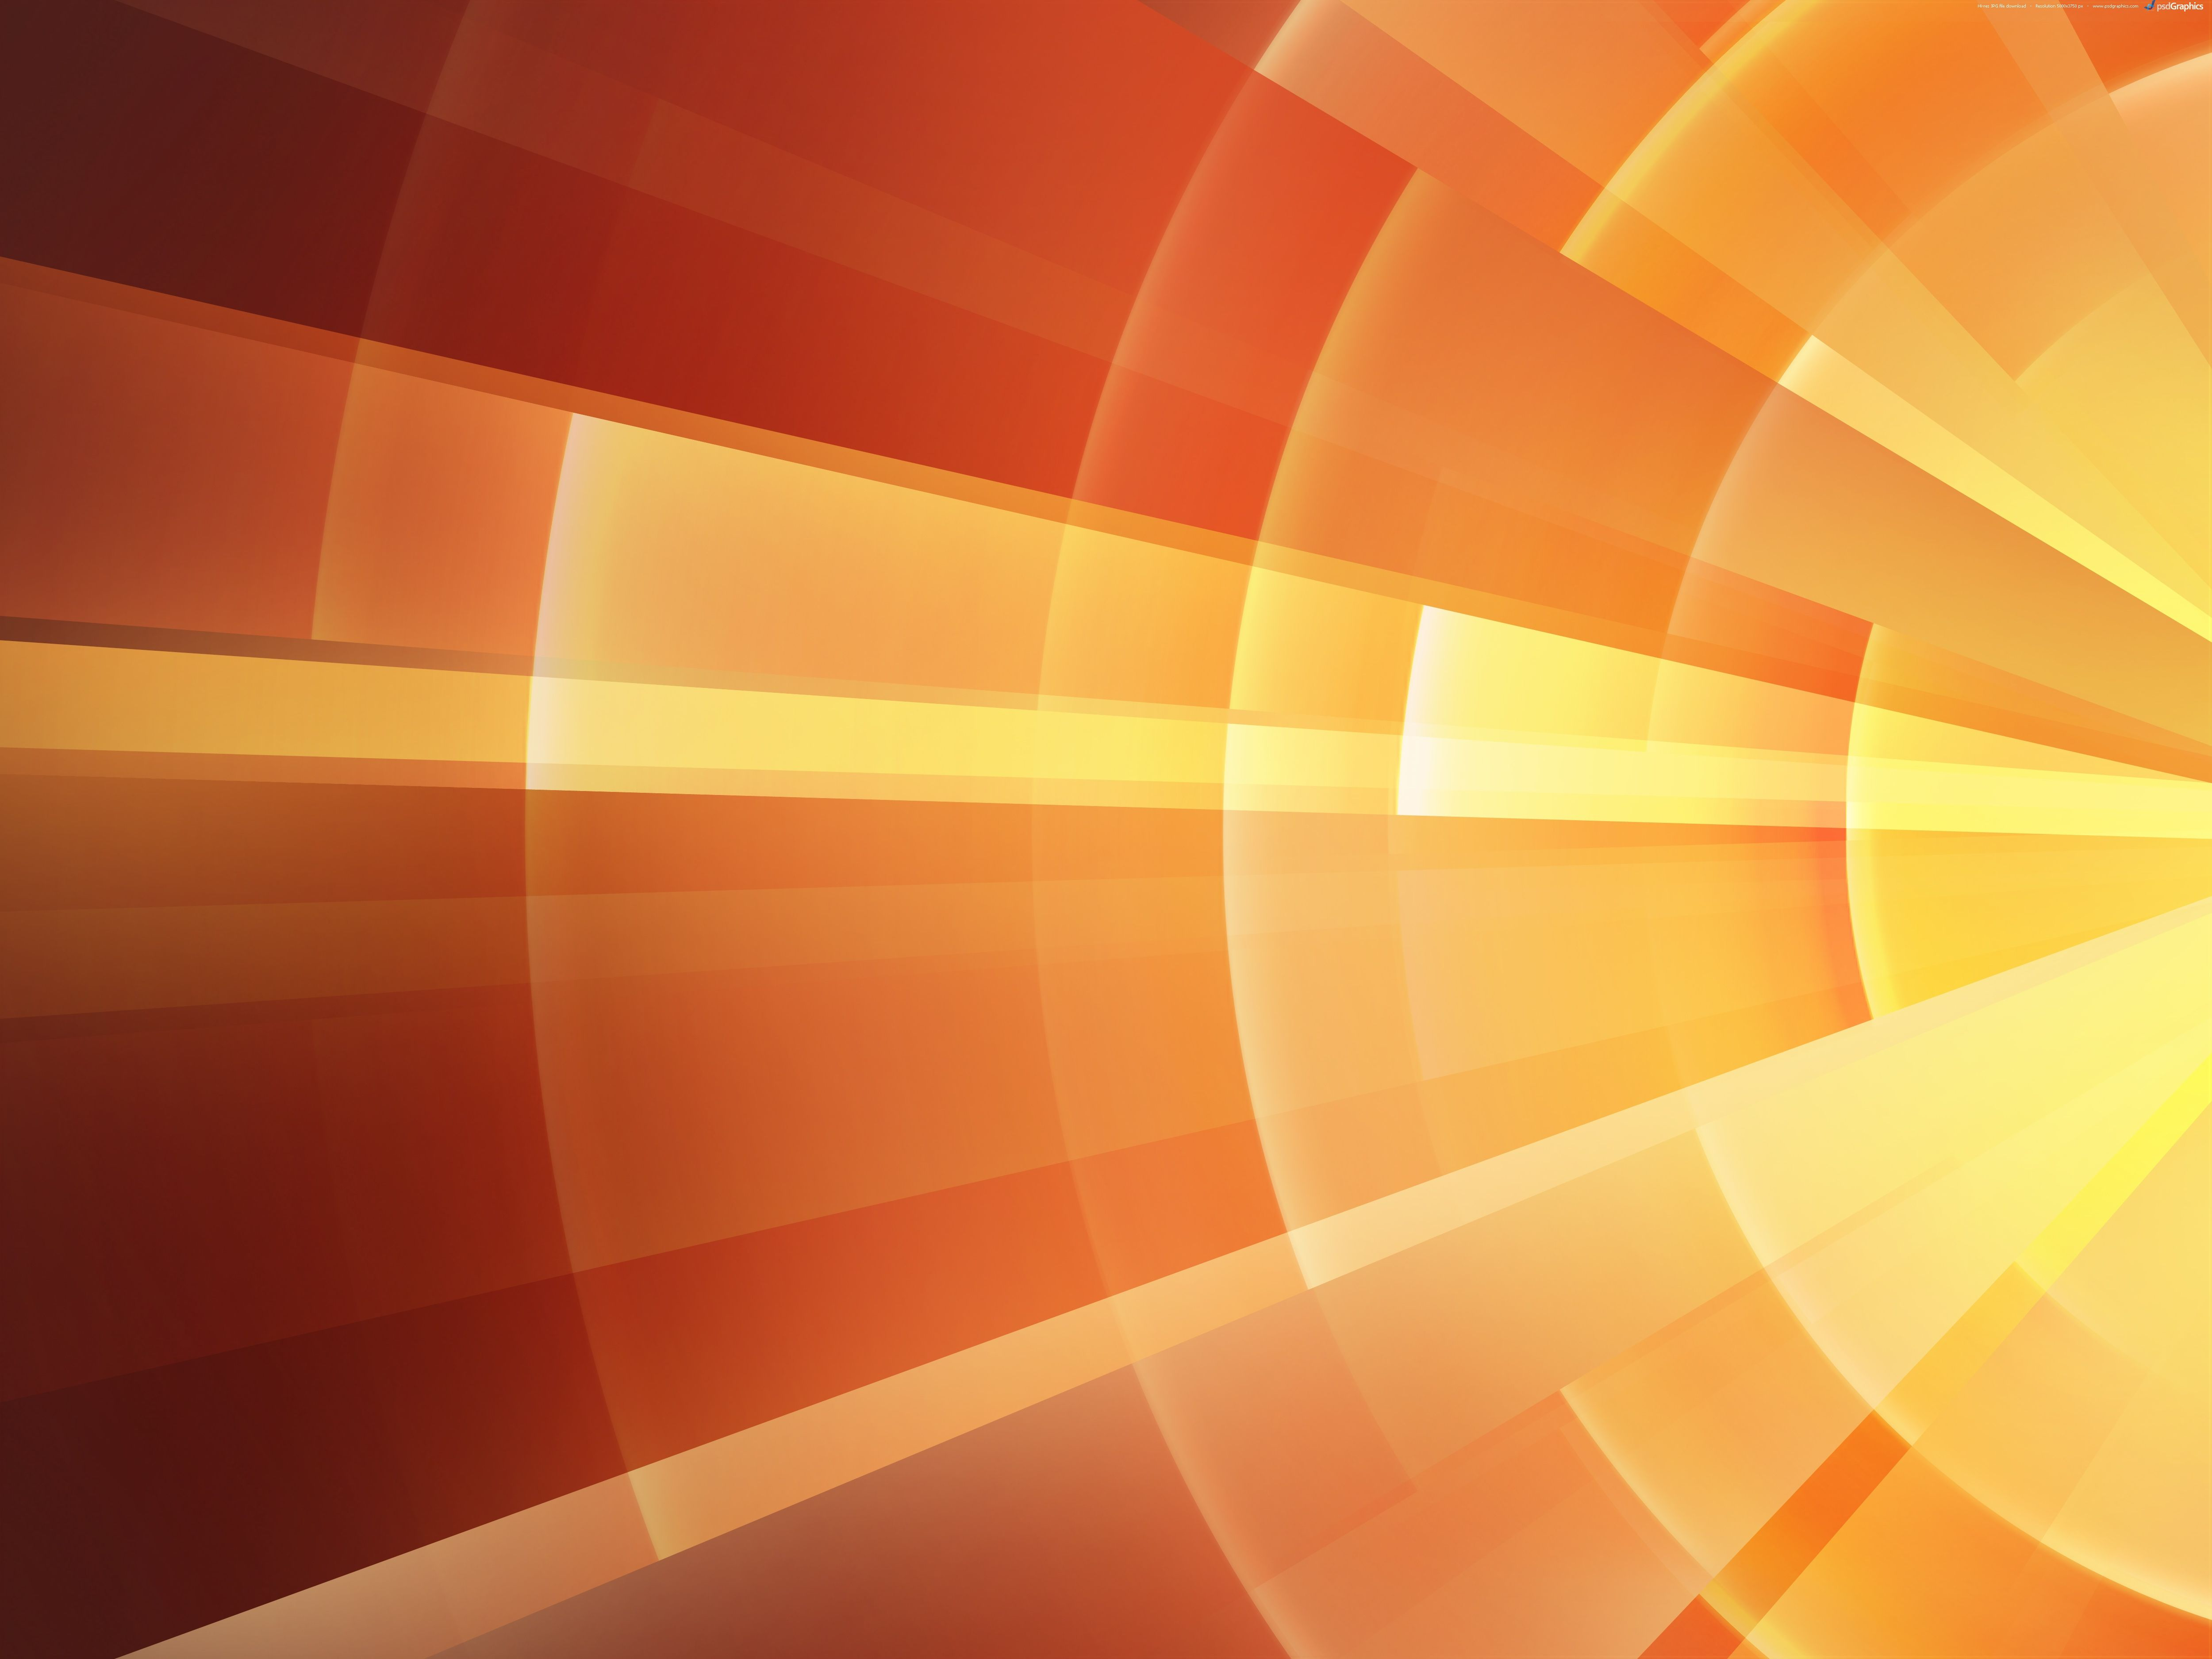 Background Images Abstract Lastest Abstract Orange Backgrounds Psdgraphics For Background Images Abstract Laste Orange Background Abstract Orange Wallpaper